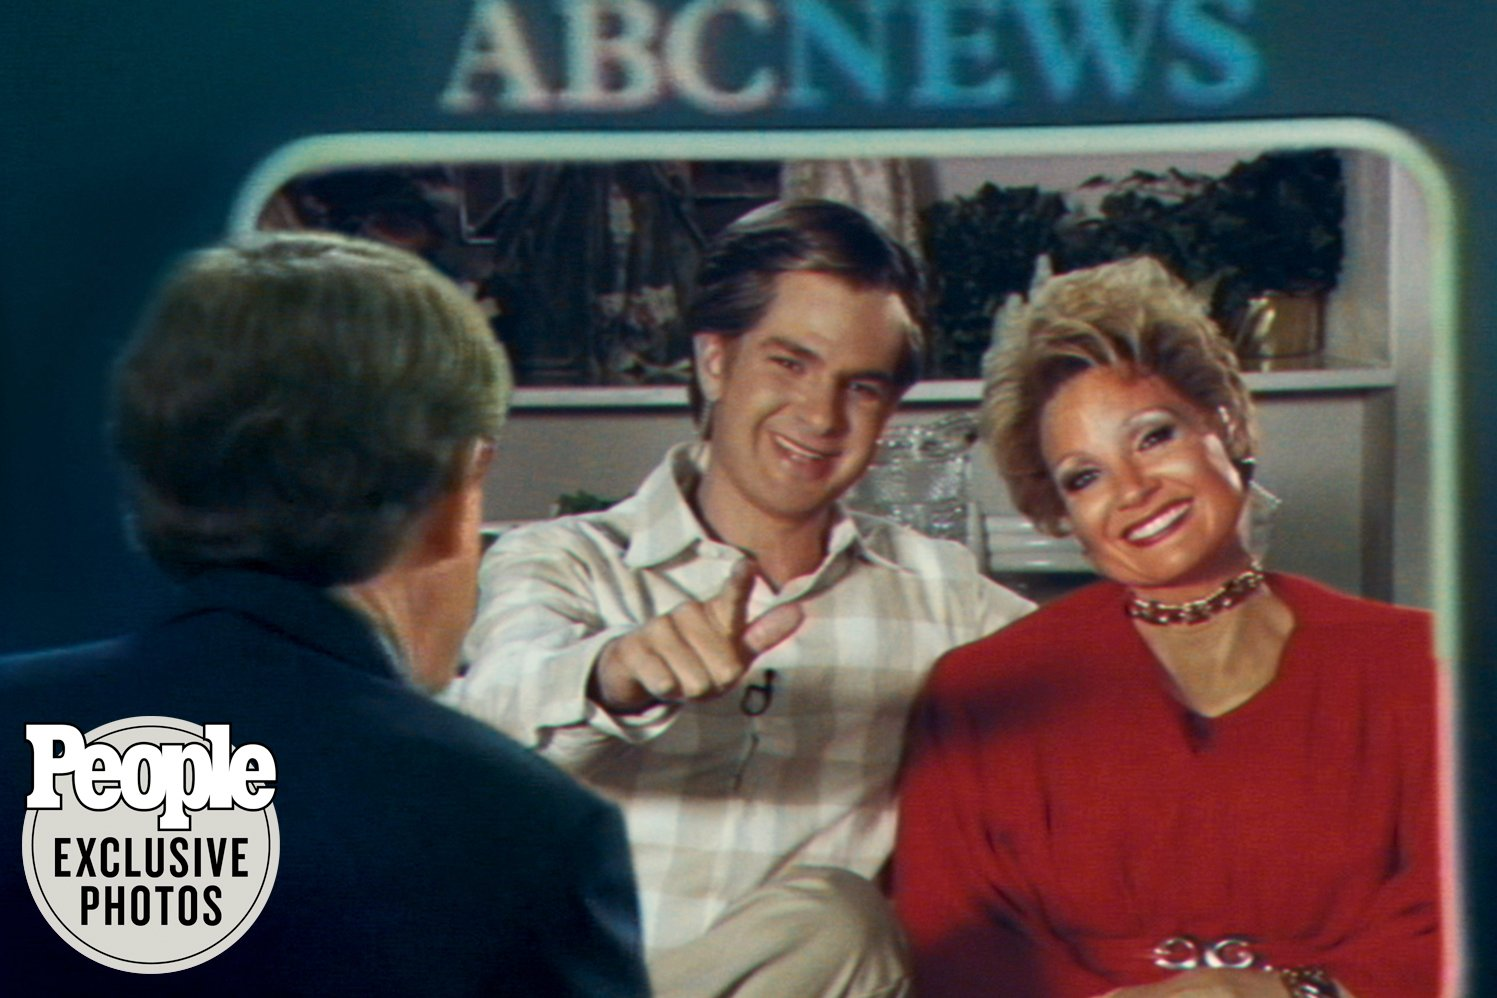 """Actors Andrew Garfield and Jessica Chastain as the famous televangelist couple, Jim and Tammy Faye Bakker, in the upcoming biopic, """"The Eyes of Tammy Faye."""" Photo courtesy Searchlight Pictures"""